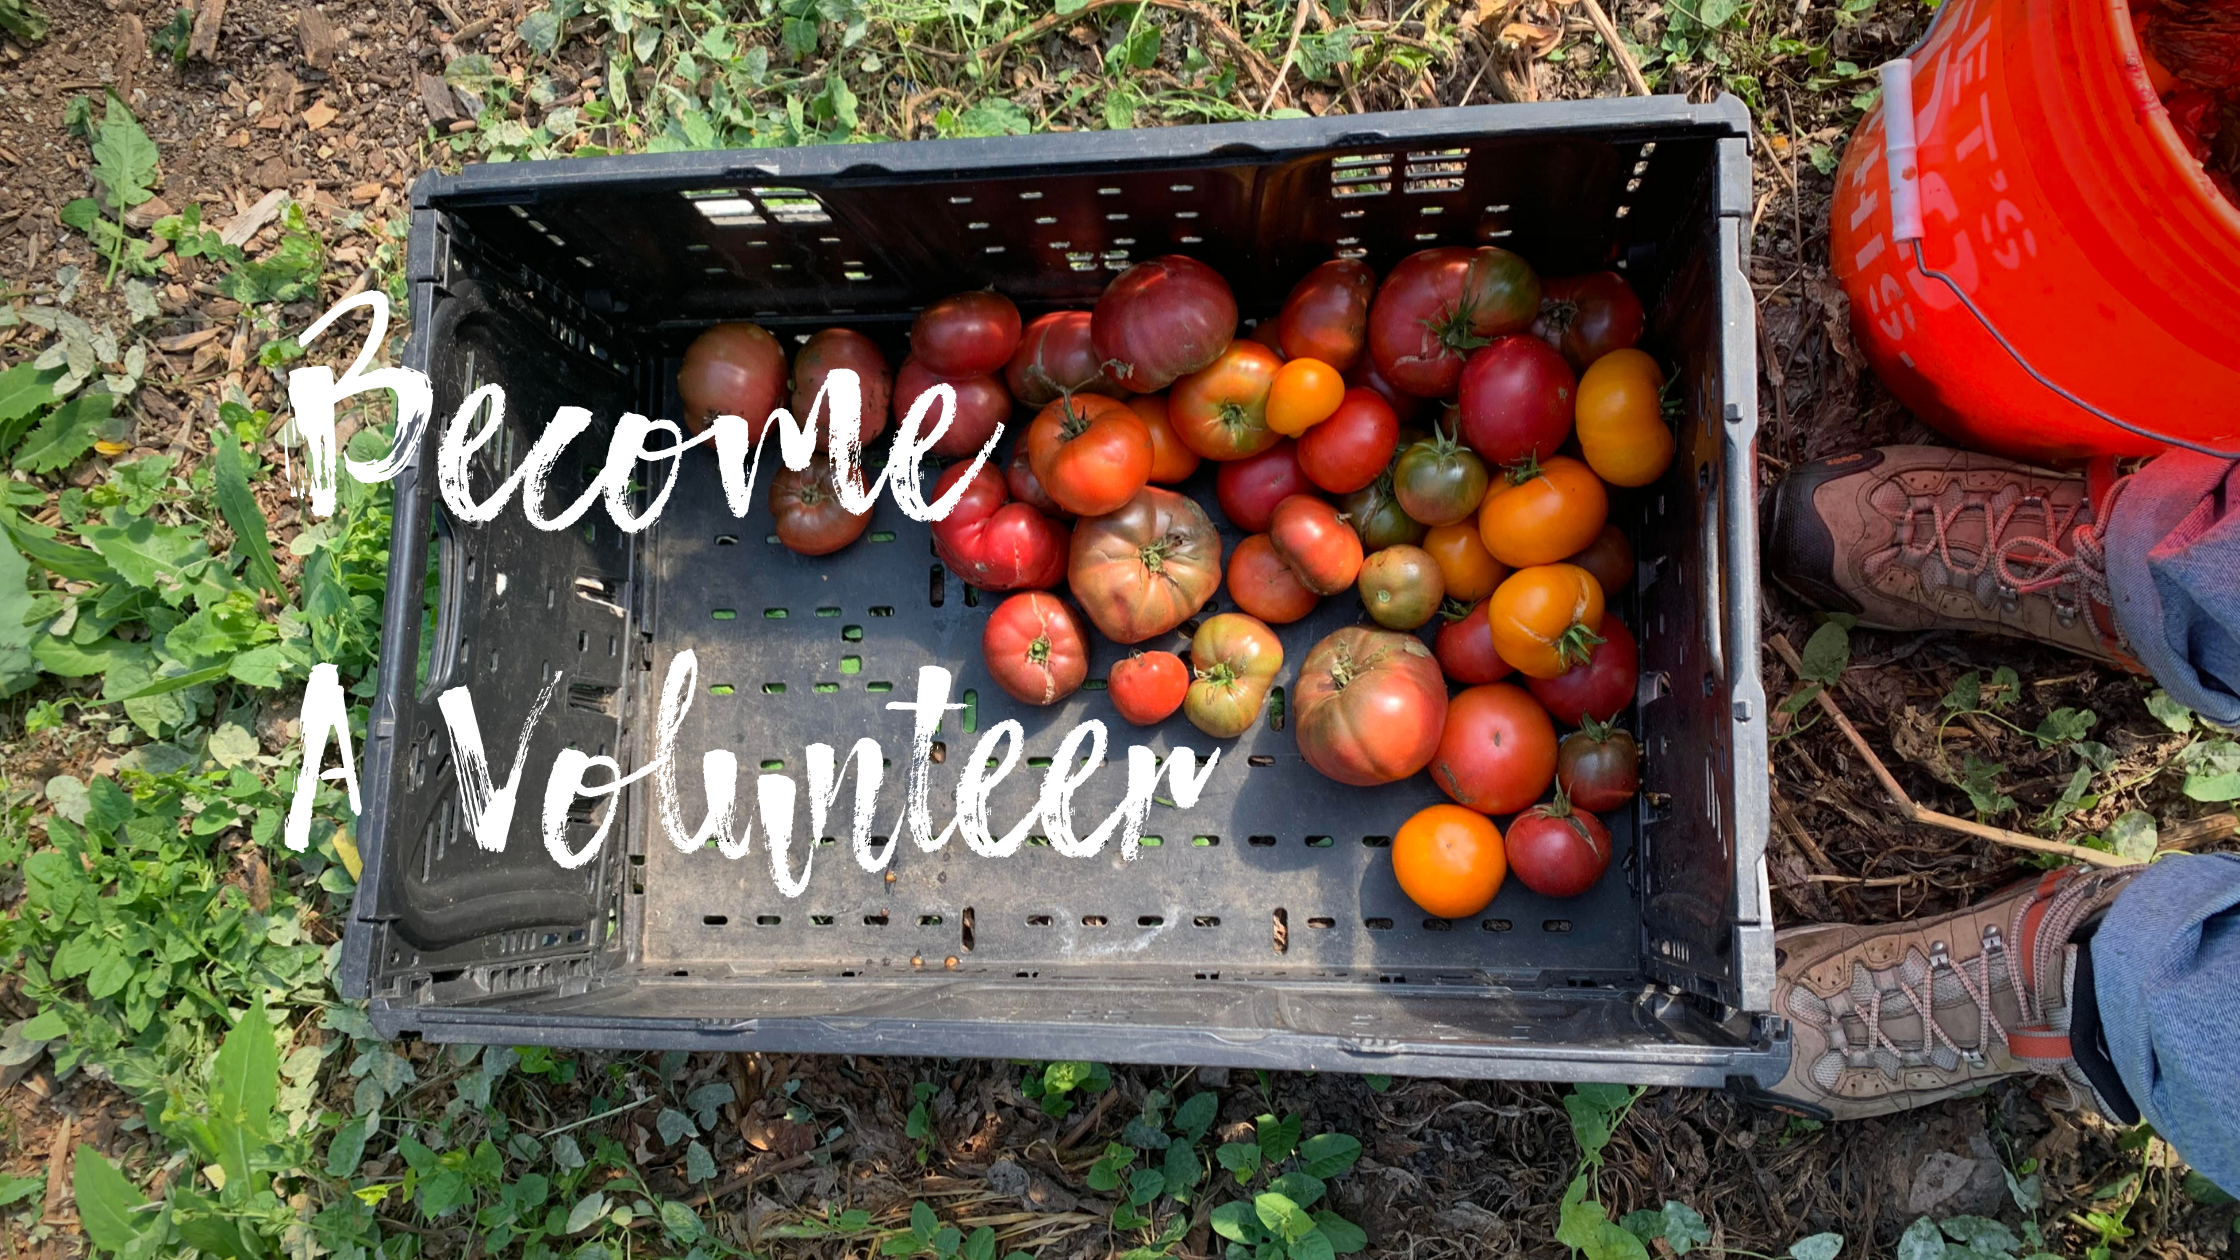 Fill out one of the applications below if you would like to become a community gardener with urban growers collective in 2021! (8)